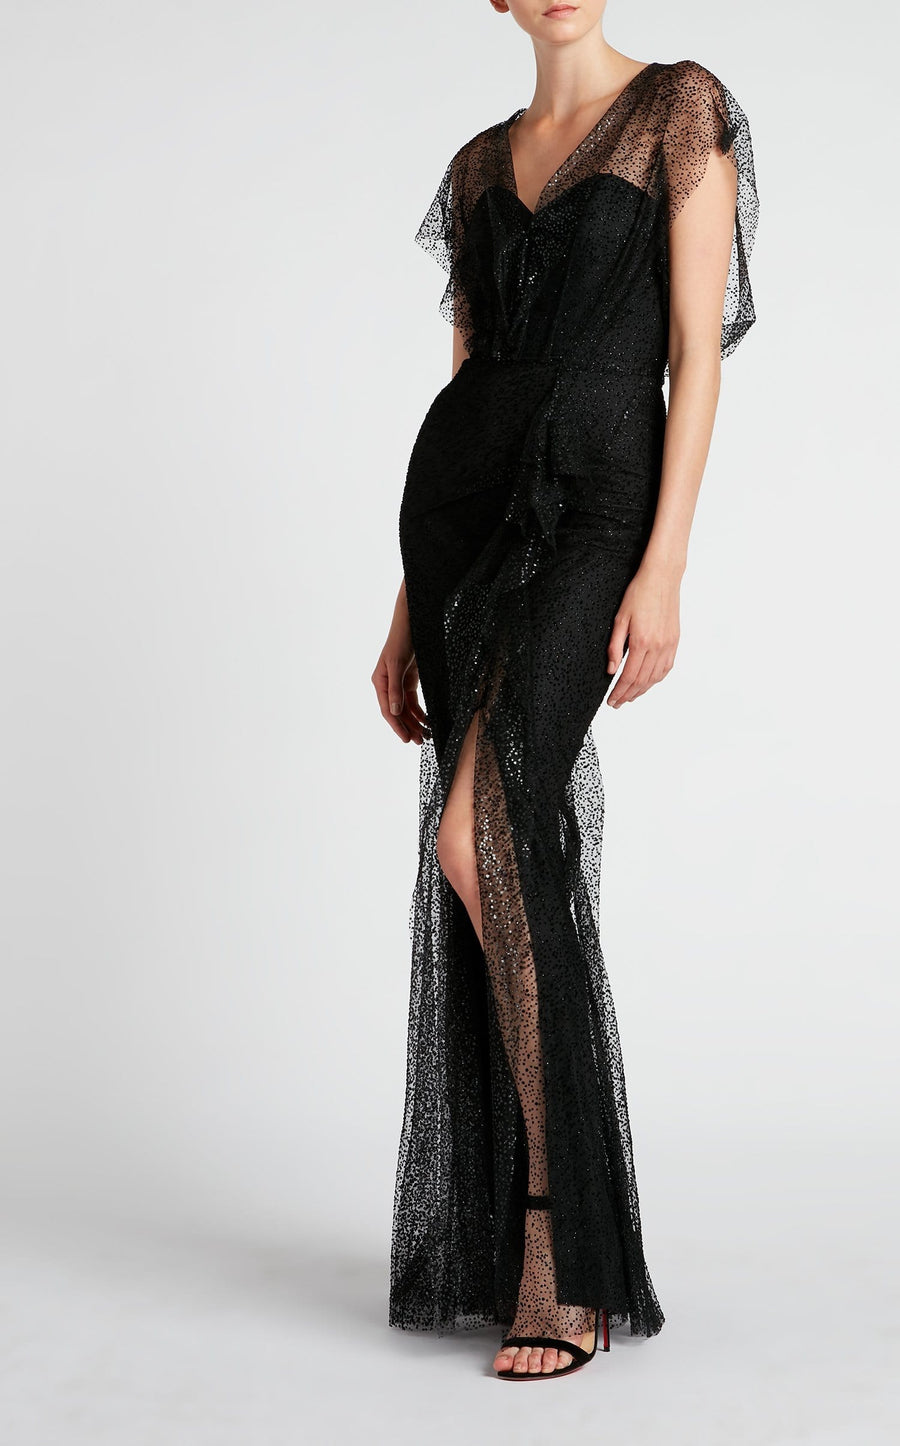 Hiscot Gown In Black from Roland Mouret